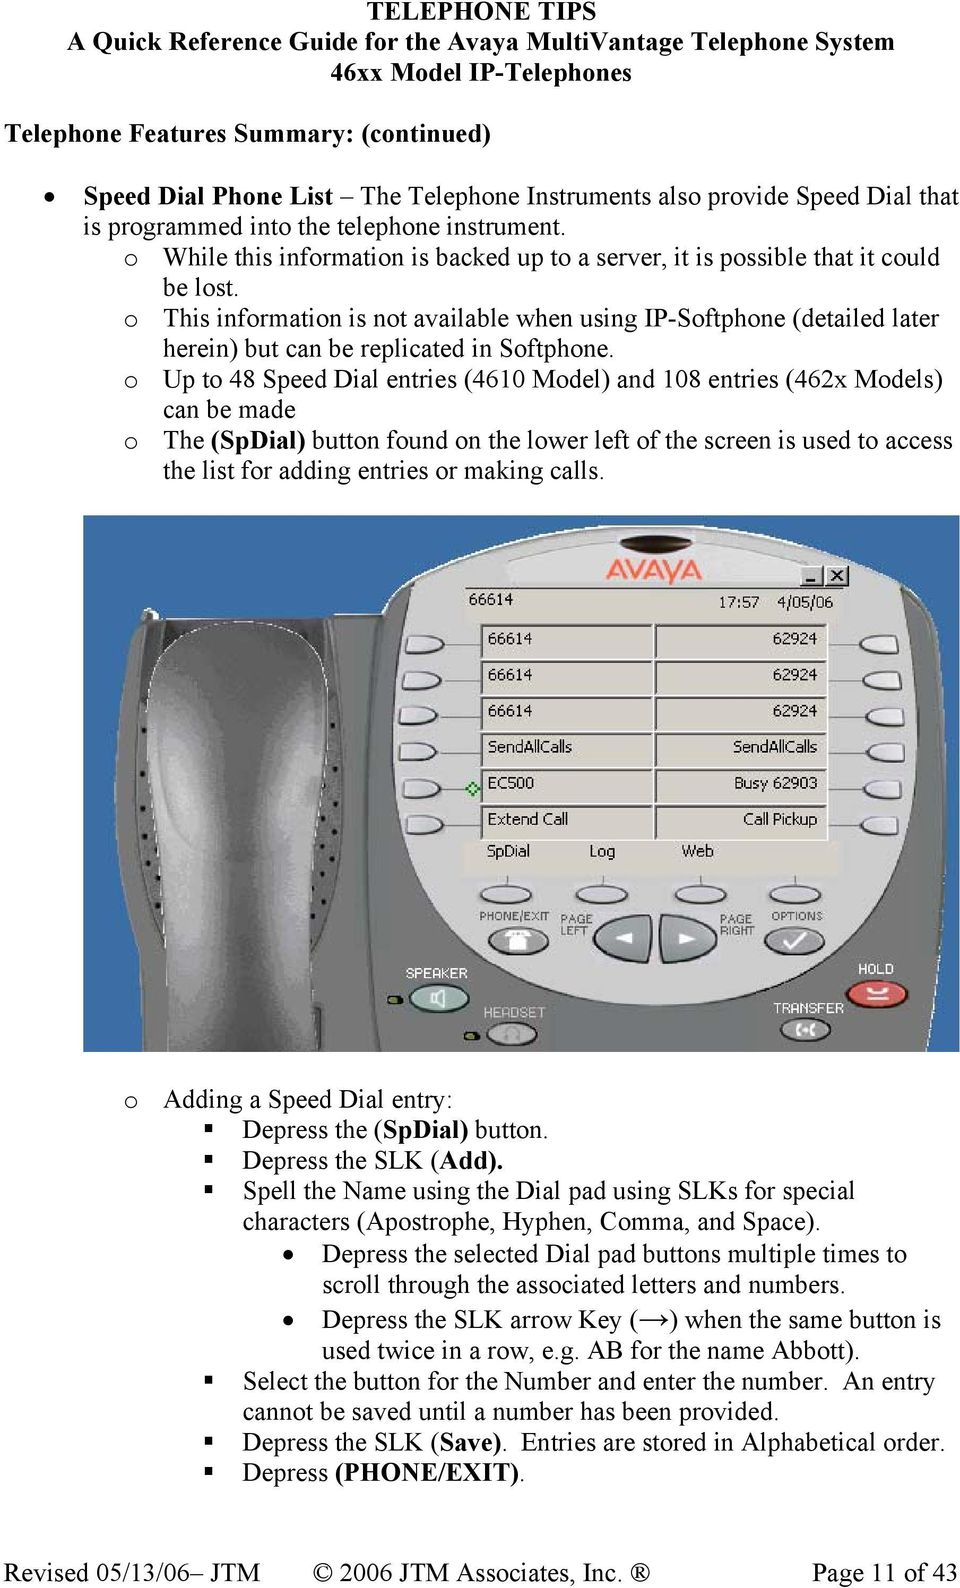 TELEPHONE TIPS  A Quick Reference Guide for the Avaya